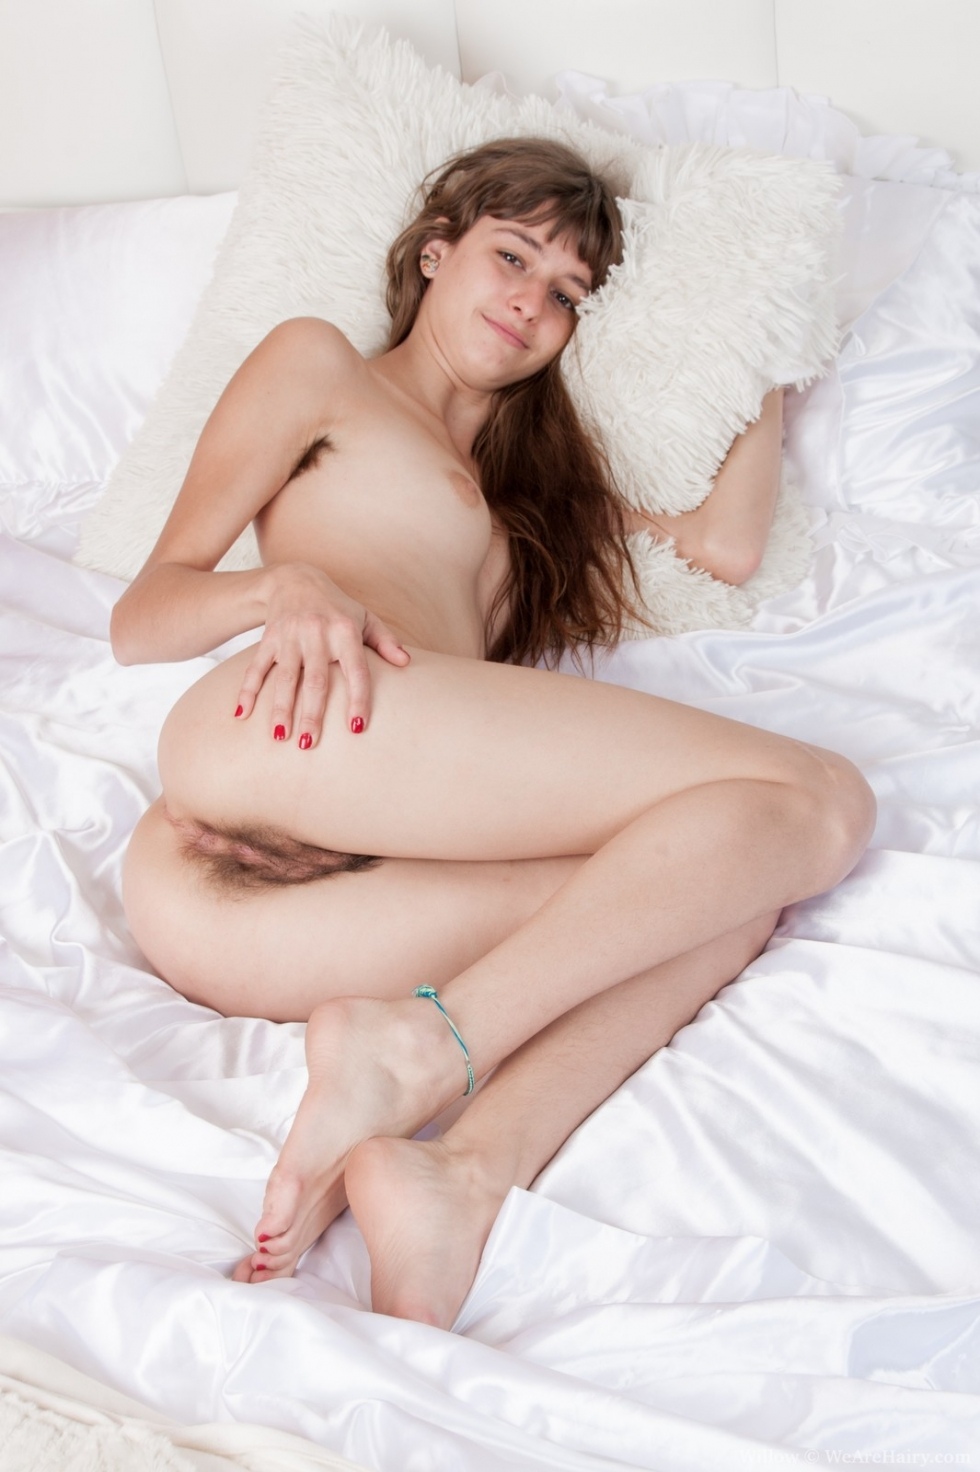 Free furriey nude pictures opinion you